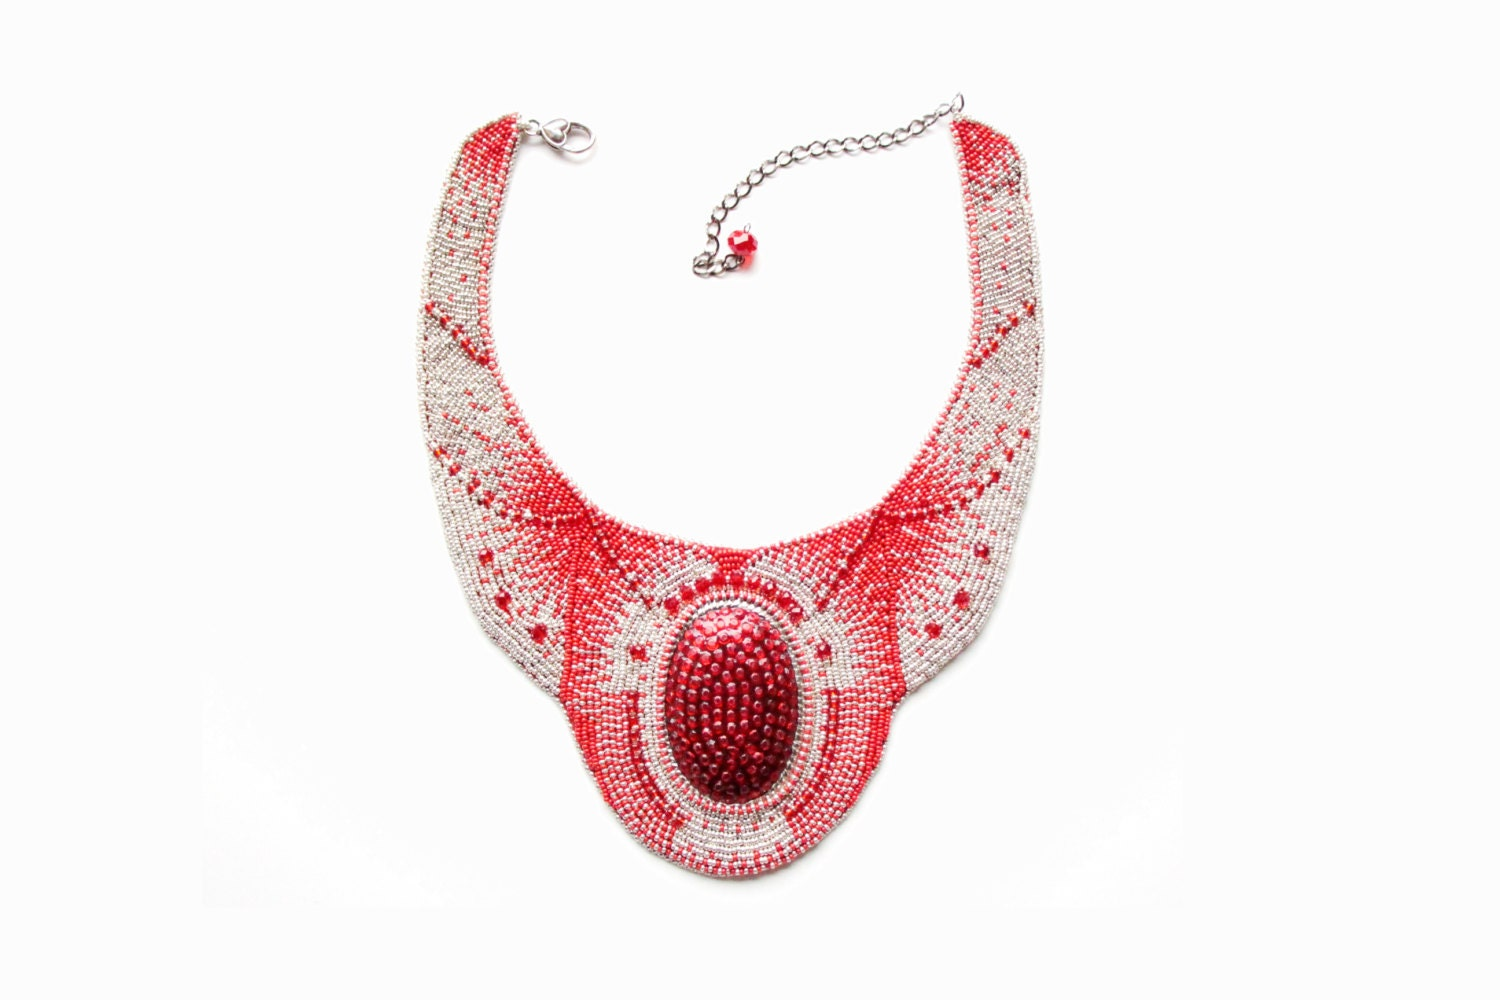 Red silver seed bead embroidery necklace Egyptian Large beaded jewelry embroidered Statement Cocktail party disco Beadwork Spring gift - RasaVilJewelry